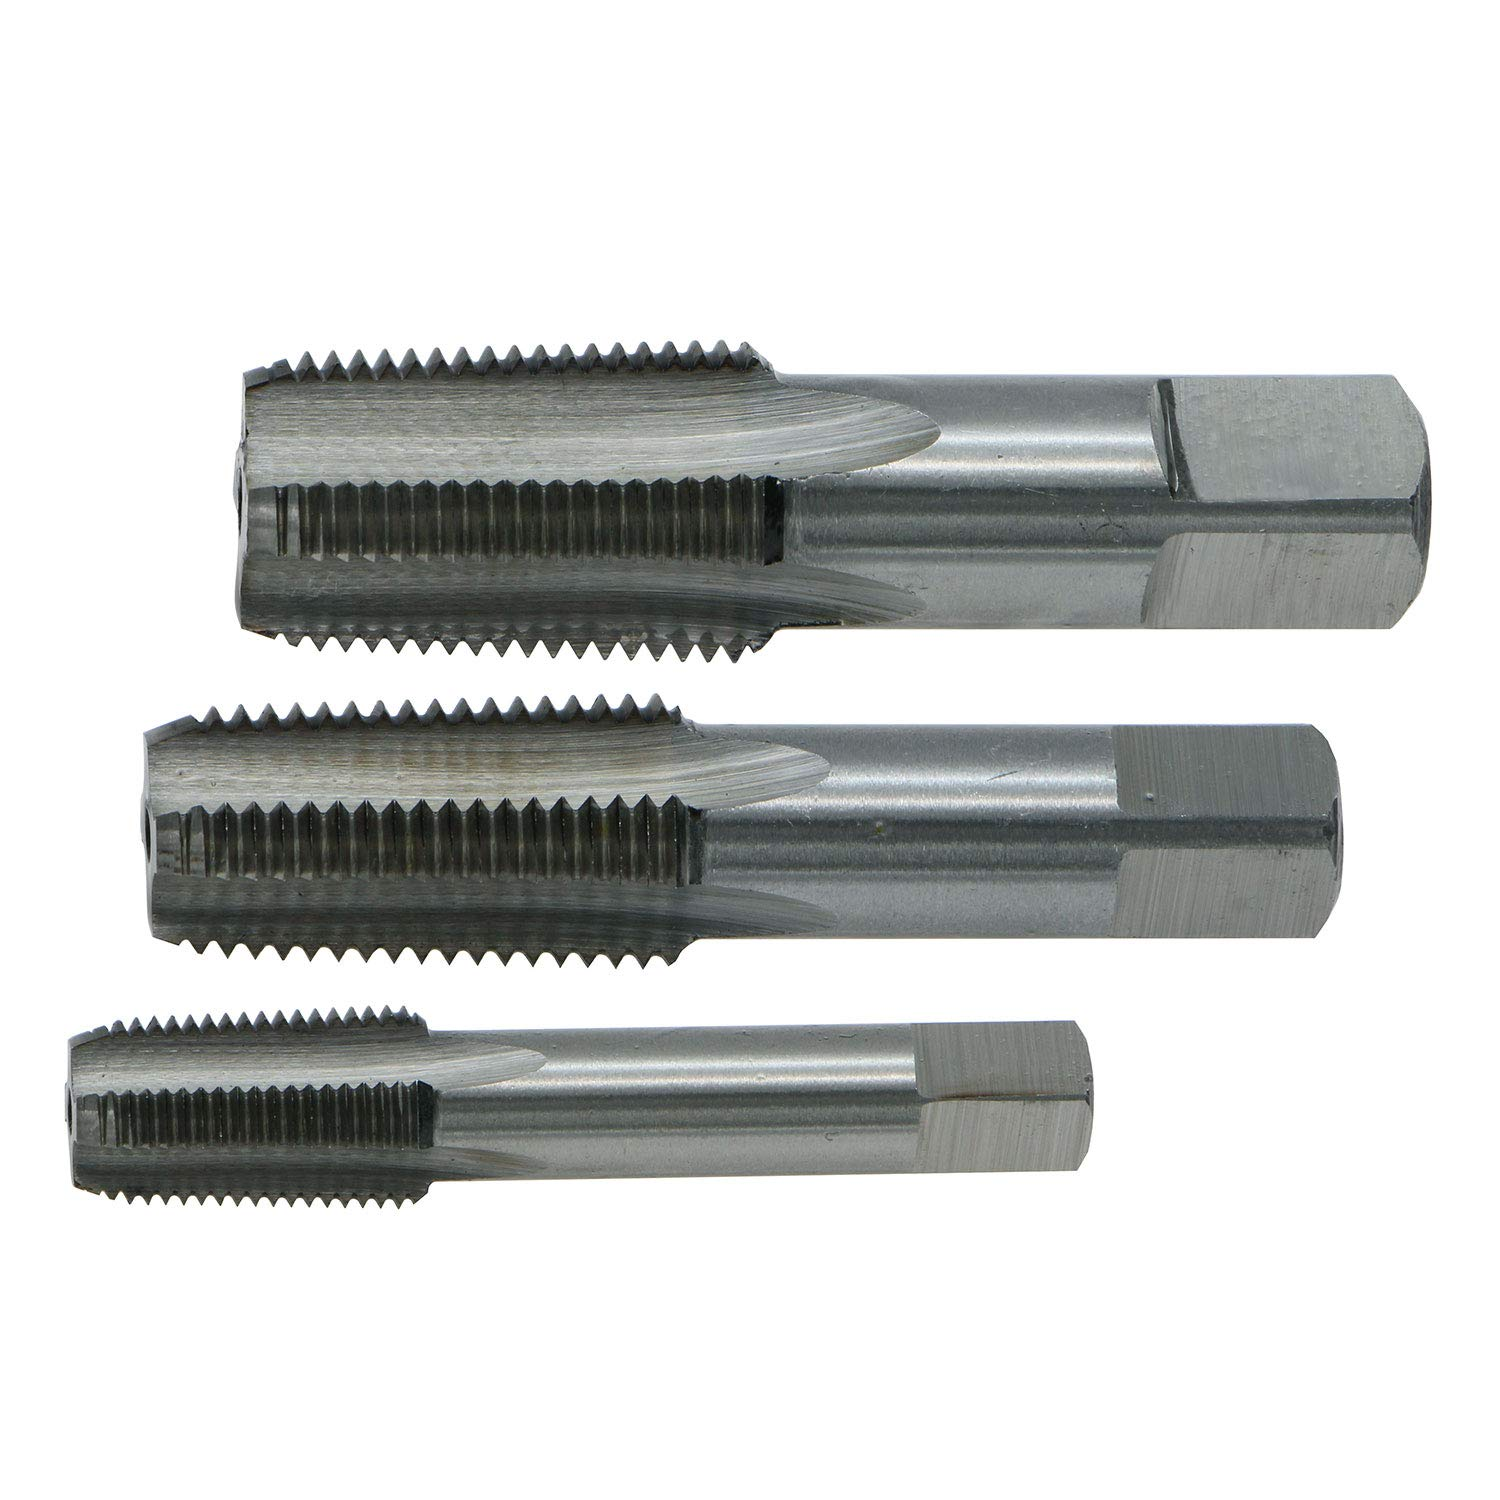 GZTool 1/8, 1/4 and 3/8 NPT Pipe Tap Set Right Hand Thread High Speed Steel HSS by GZTool